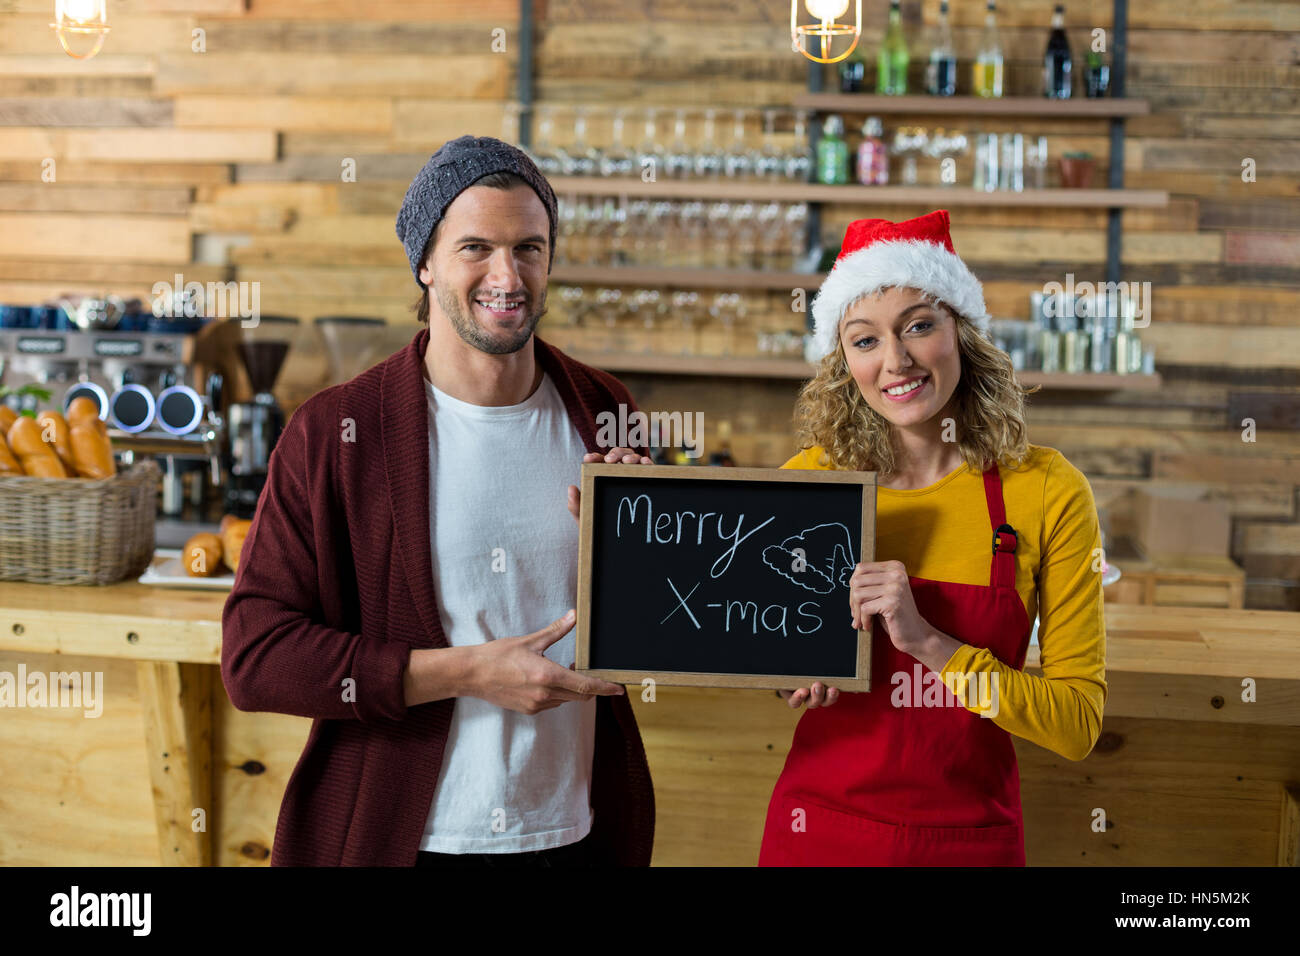 Portrait of smiling waitress and owner standing with merry x mas sign board in cafe - Stock Image